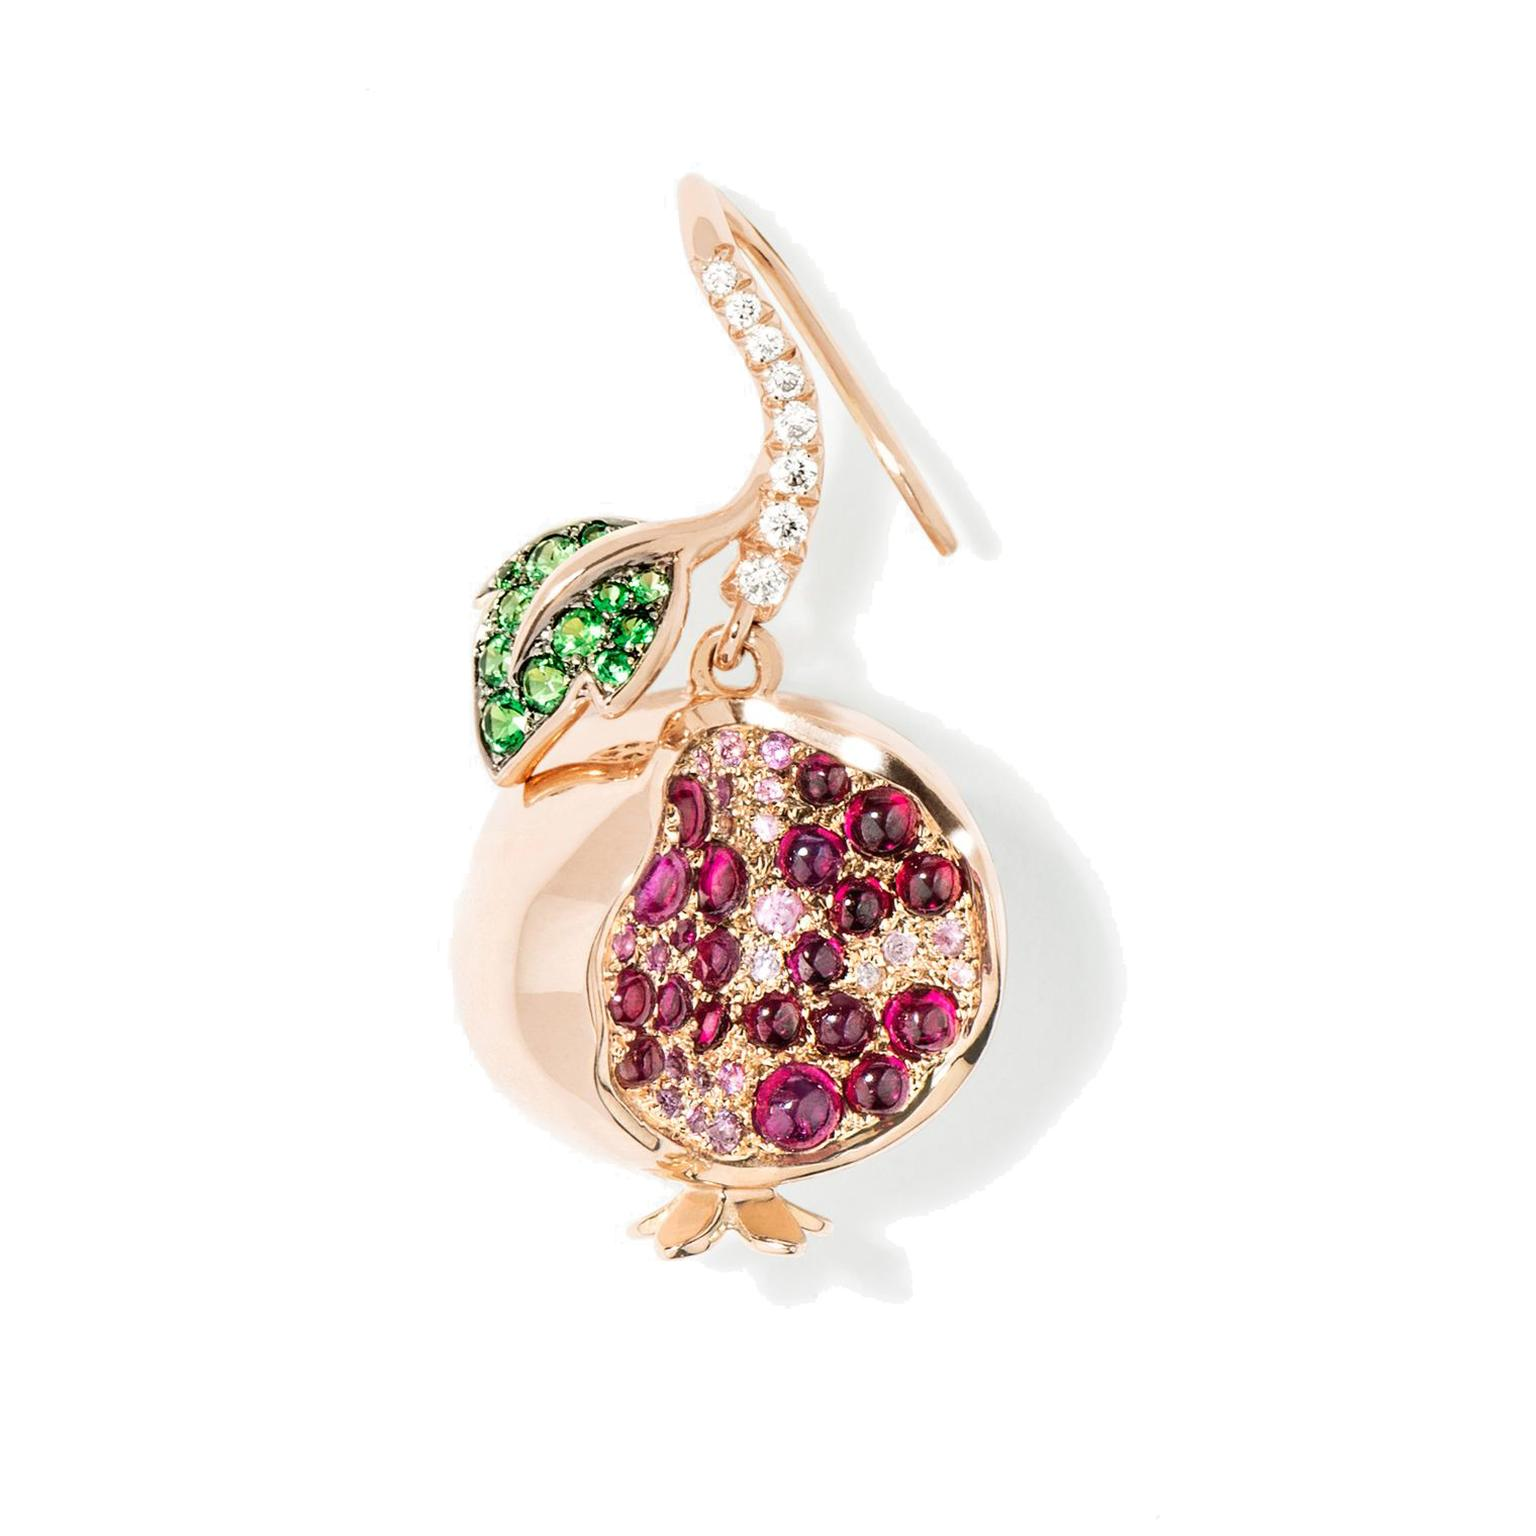 Aurelie Bidermann Pomegranate Keeper earring